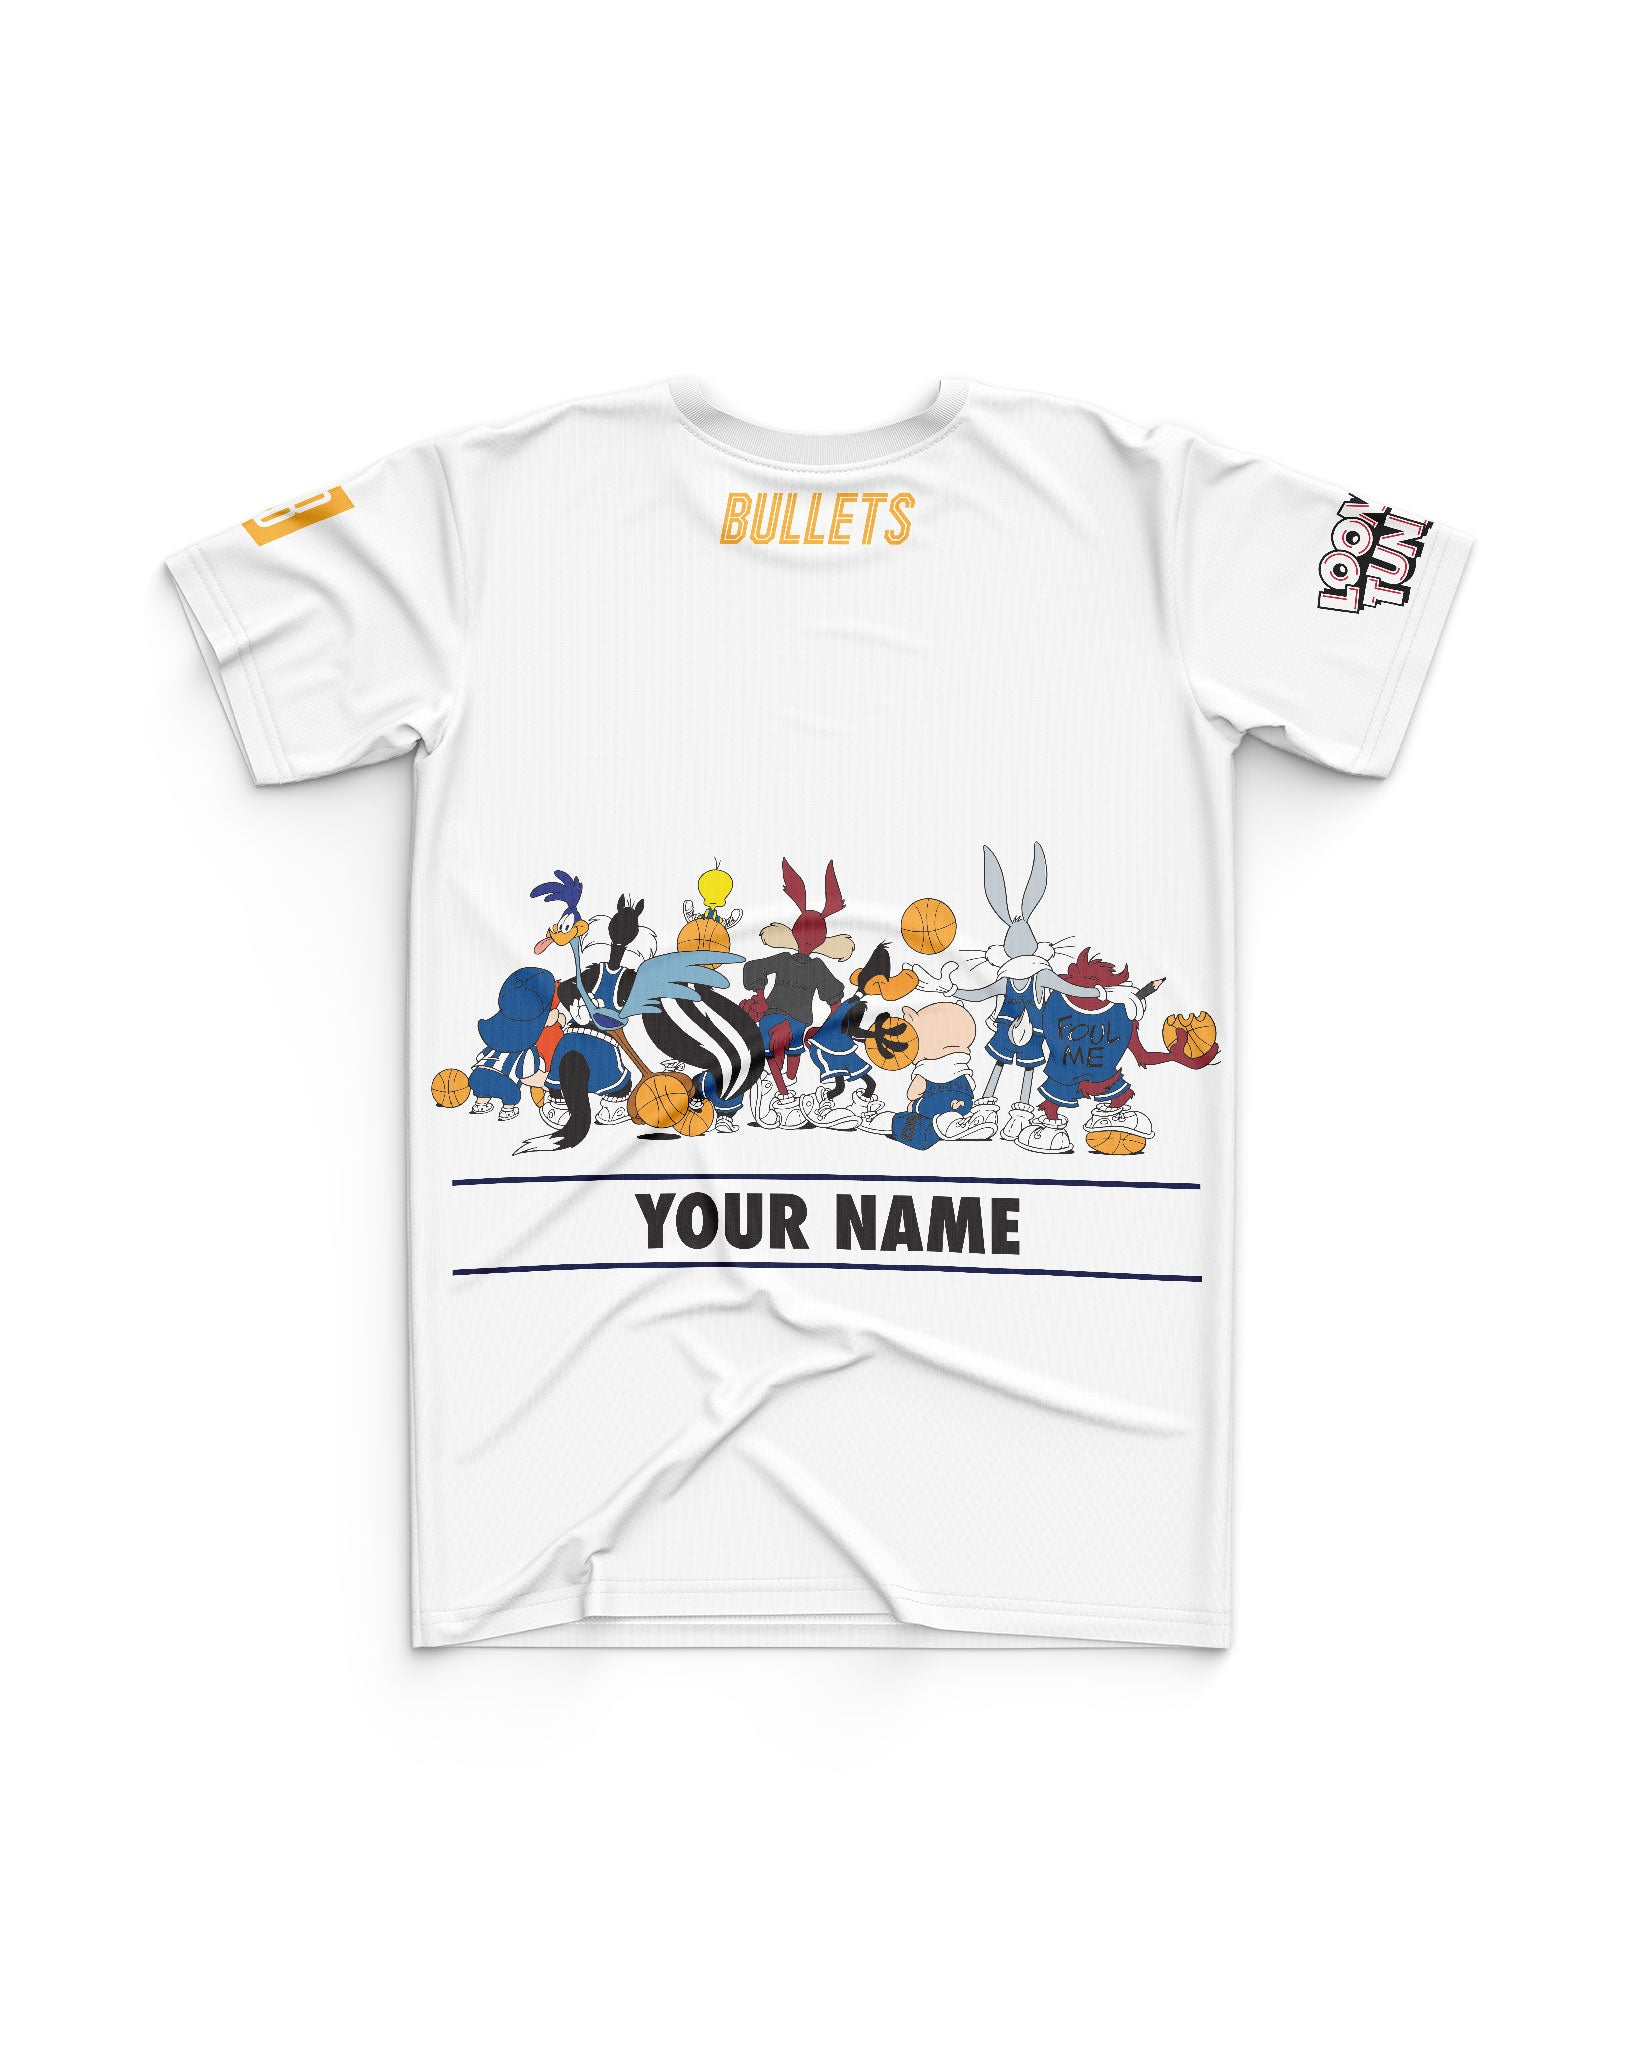 Brisbane Bullets 20/21 Looney Tunes Youth Squad Tee - Personalised